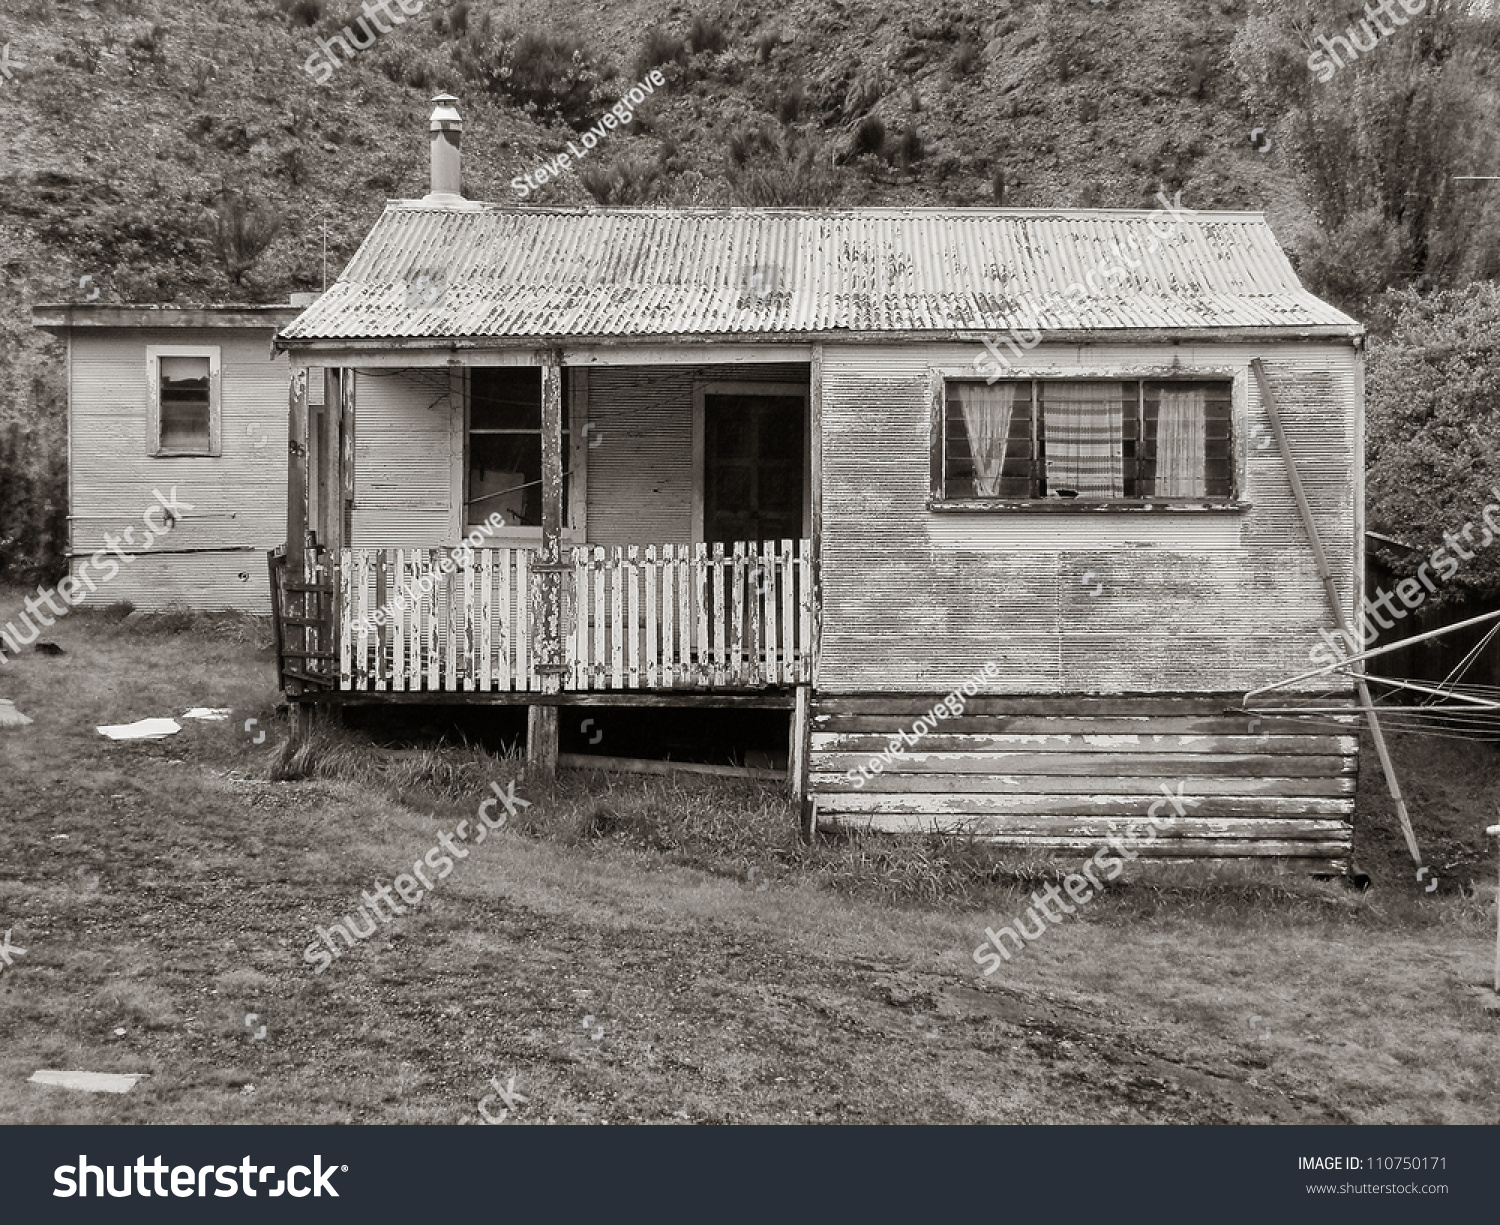 Old run down weatherboard houses mining stock photo for 0 down homes